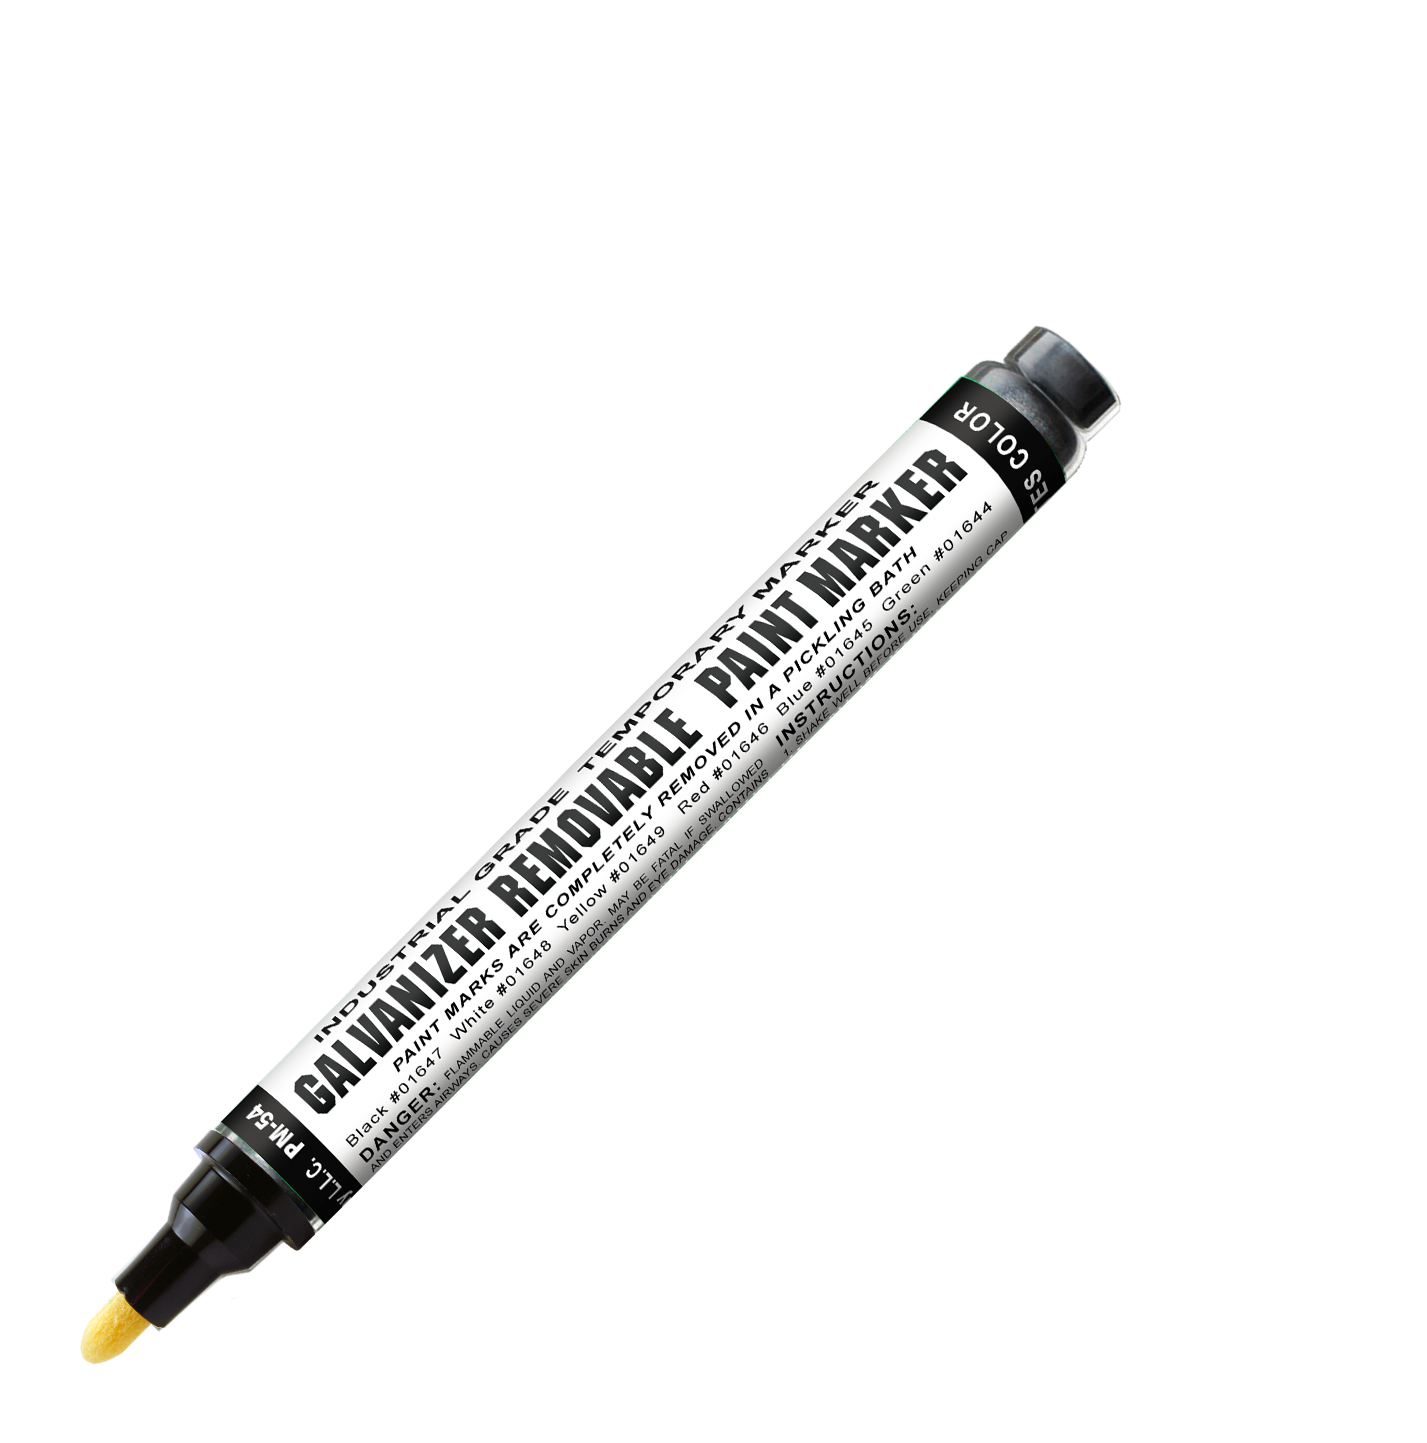 galvanizer removable paint marker